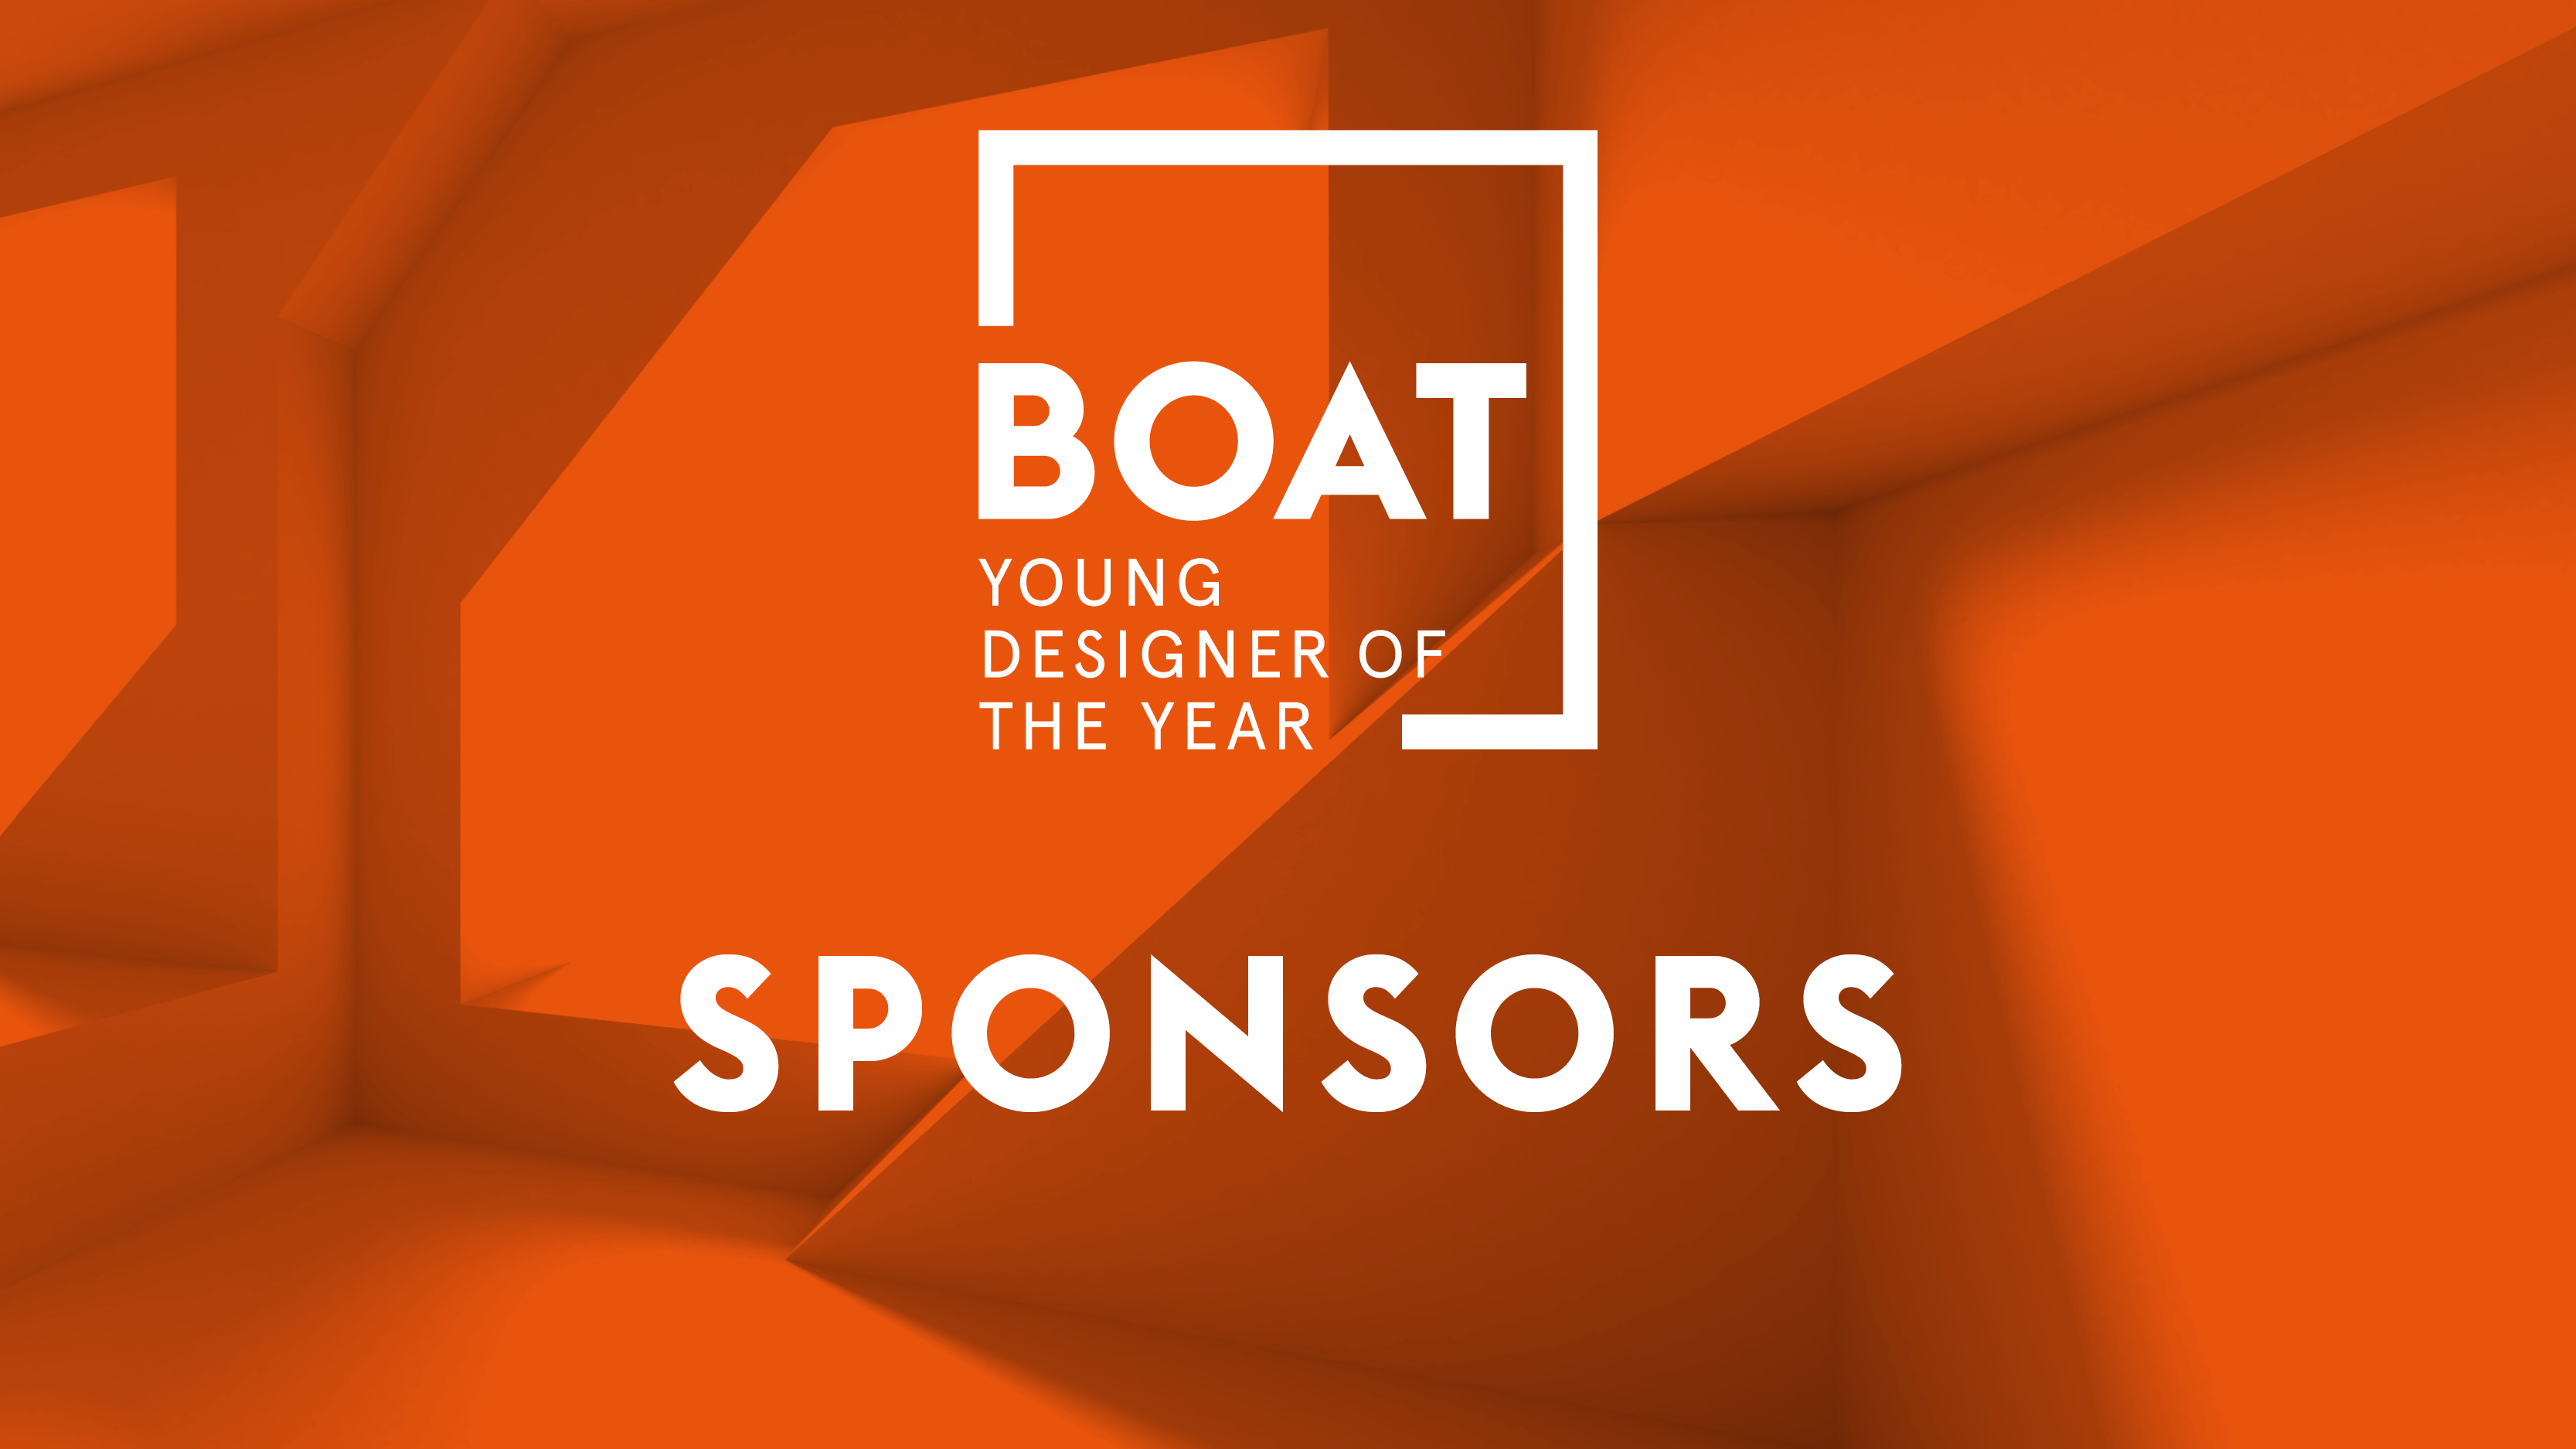 Young Designer Of The Year Award Boat International